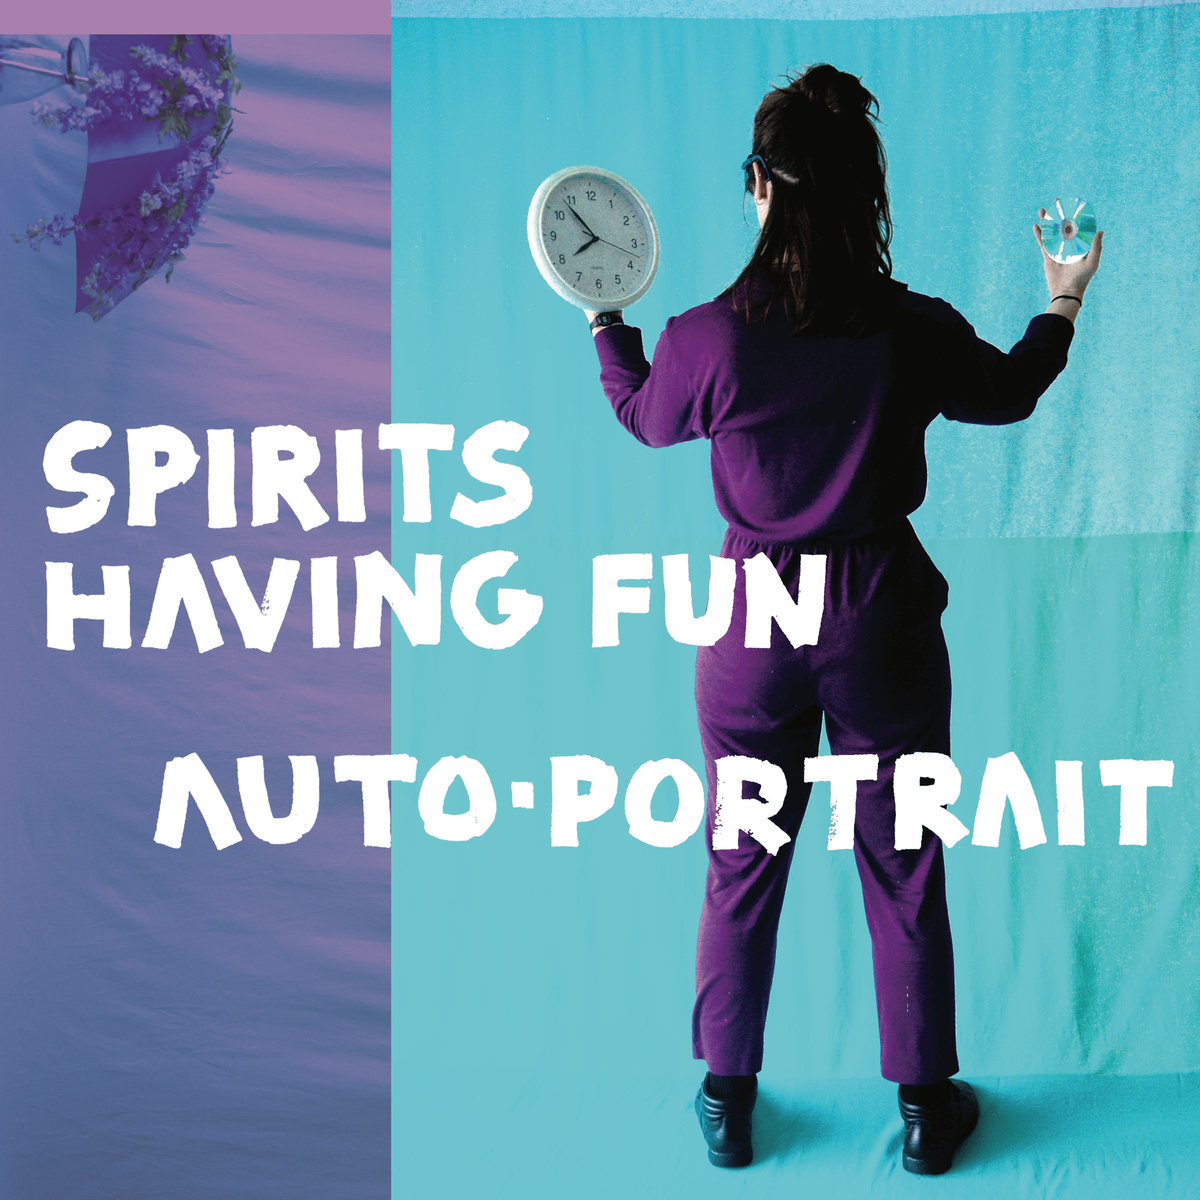 Spirits Having Fun,Auto- Portrait - Art rock that is as melodic and mathy as it is chaotic and colorful. This album slaps into new dimension free falling